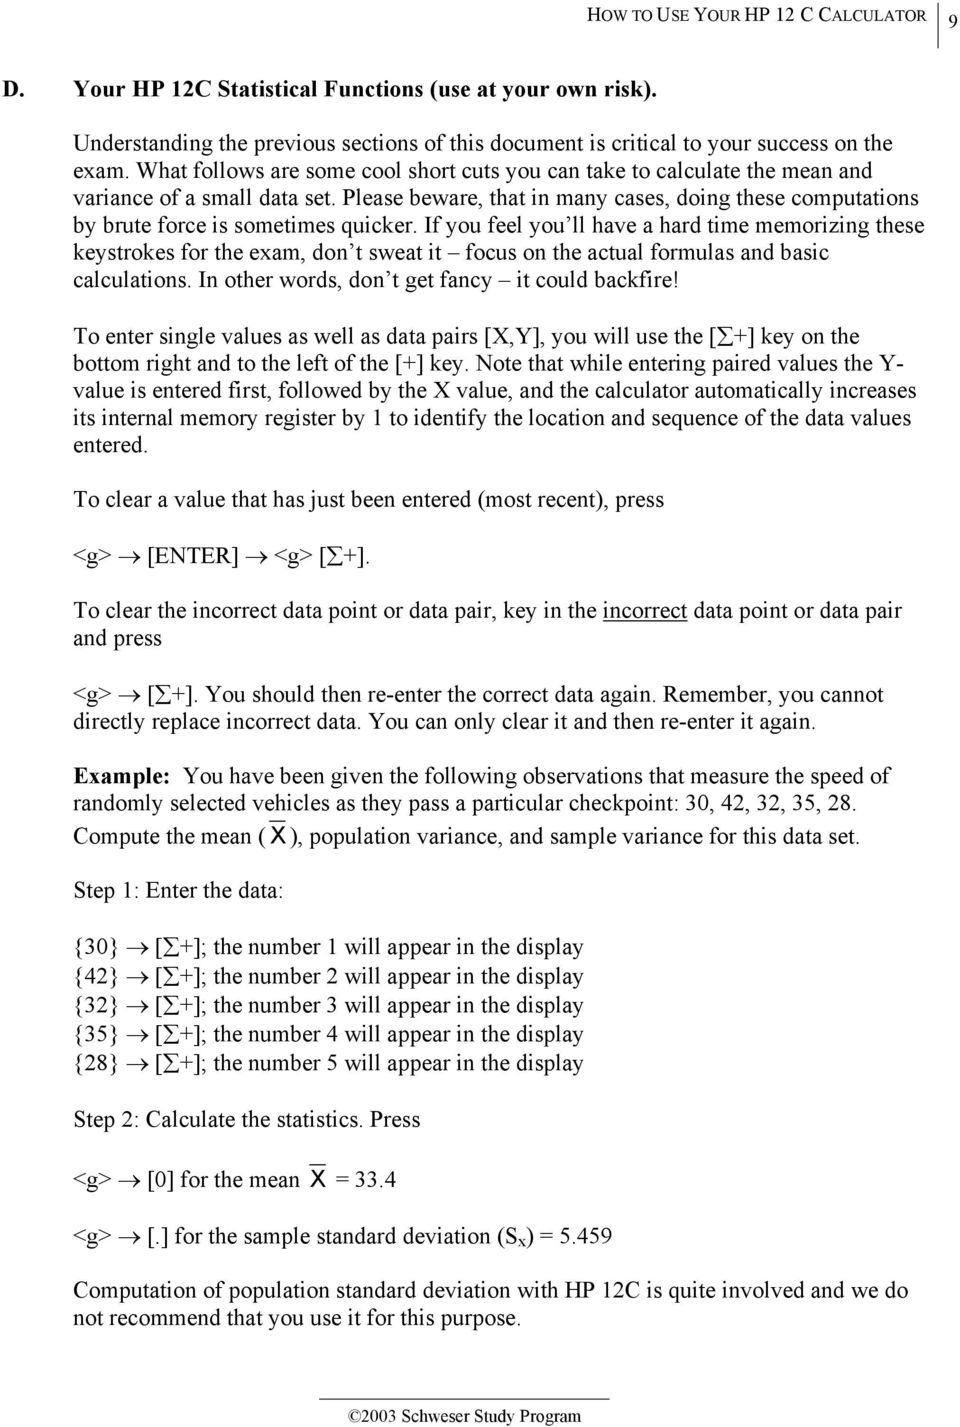 HOW TO USE YOUR HP 12 C CALCULATOR - PDF